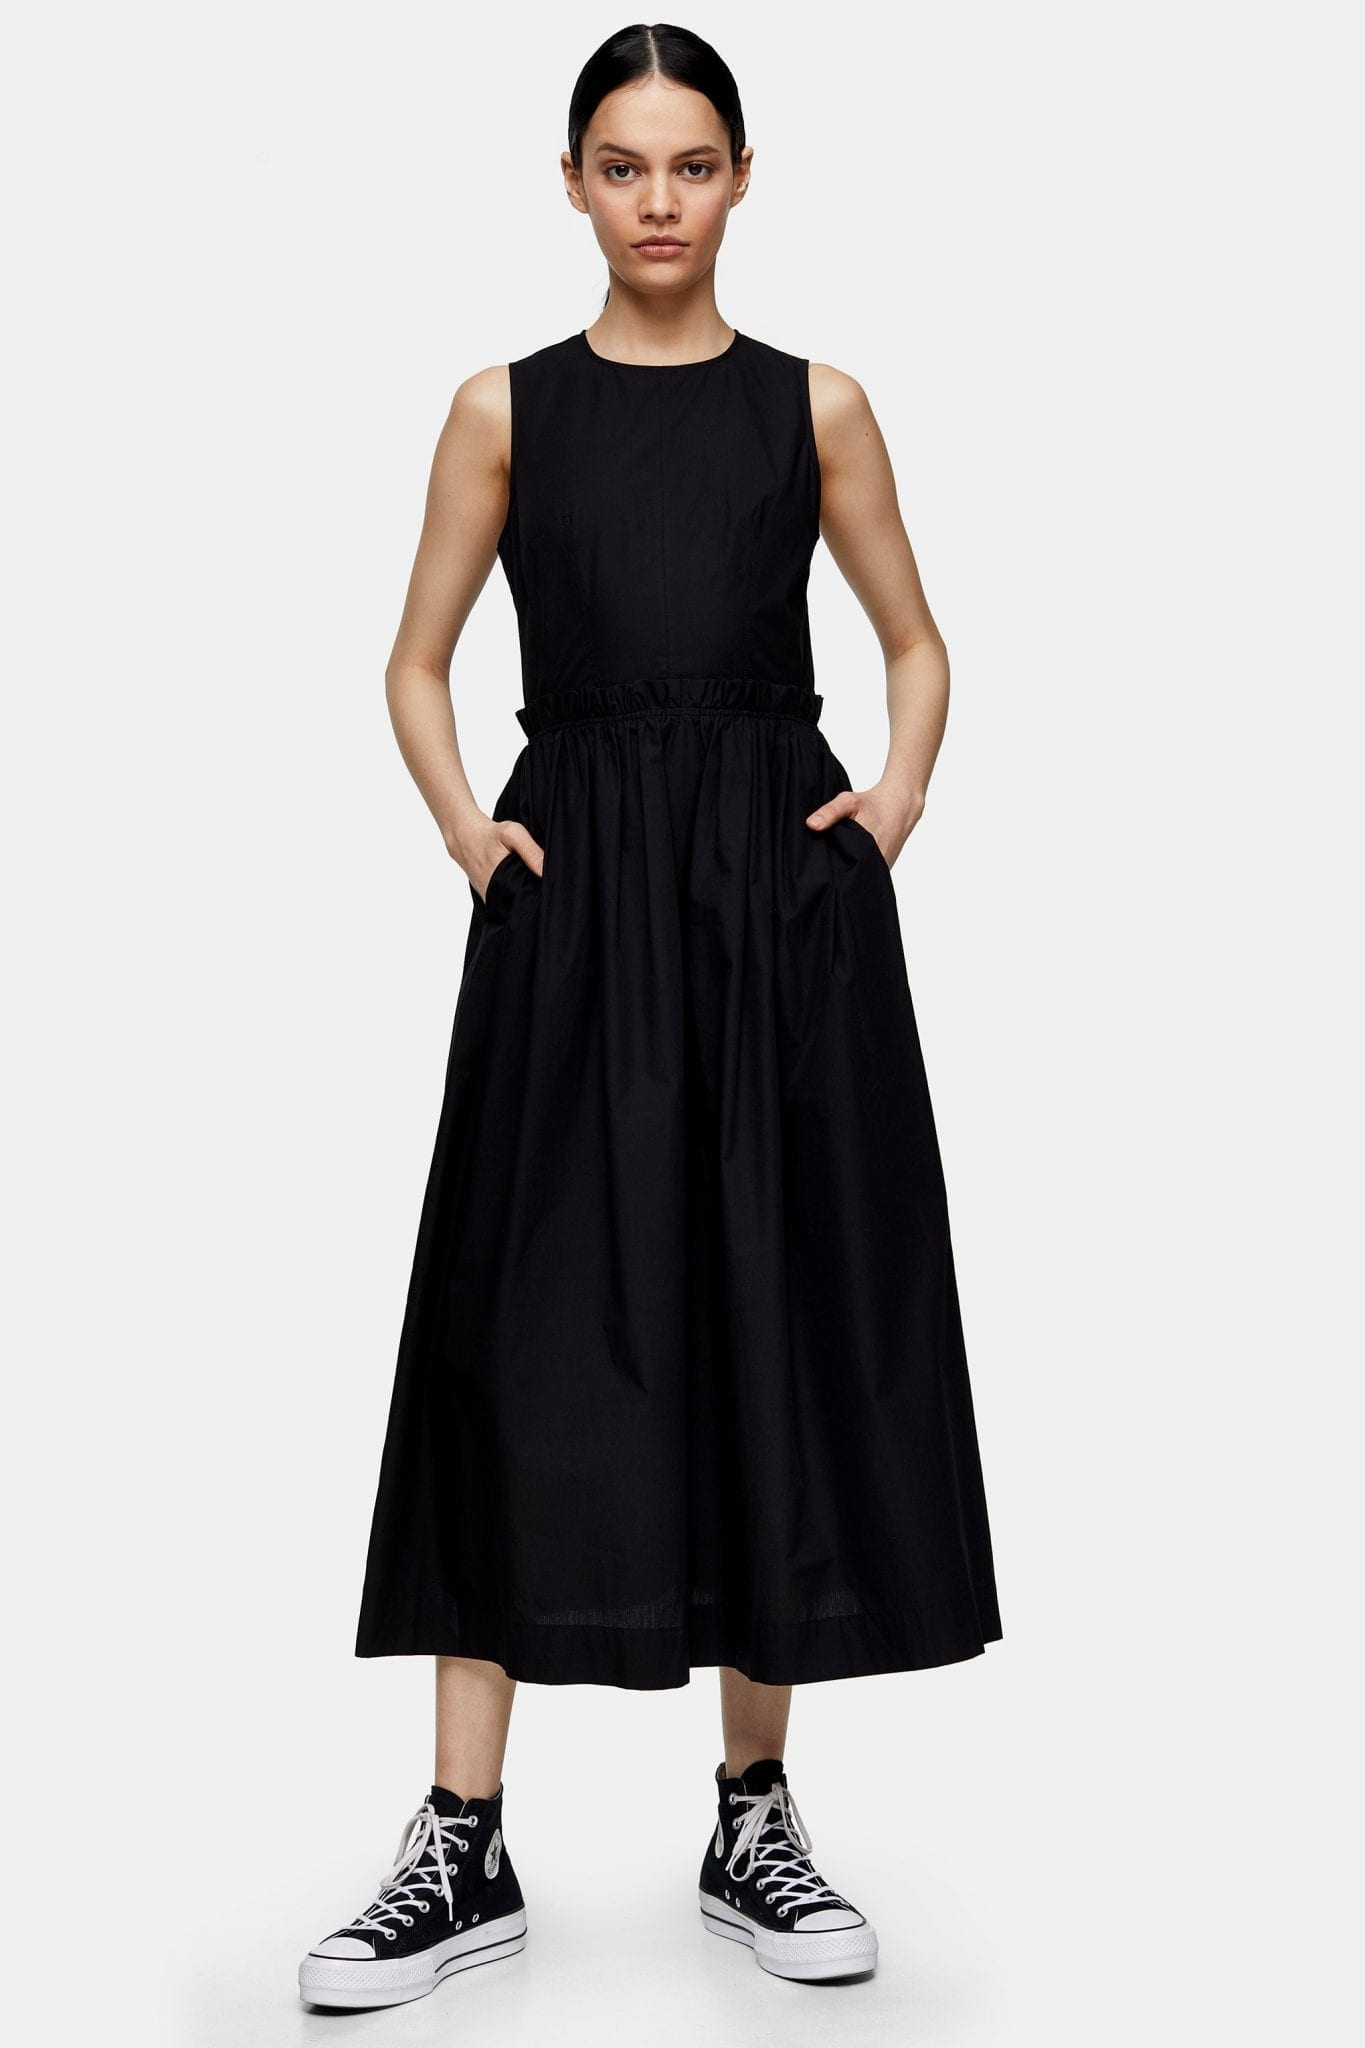 TOPSHOP Black Poplin Dress